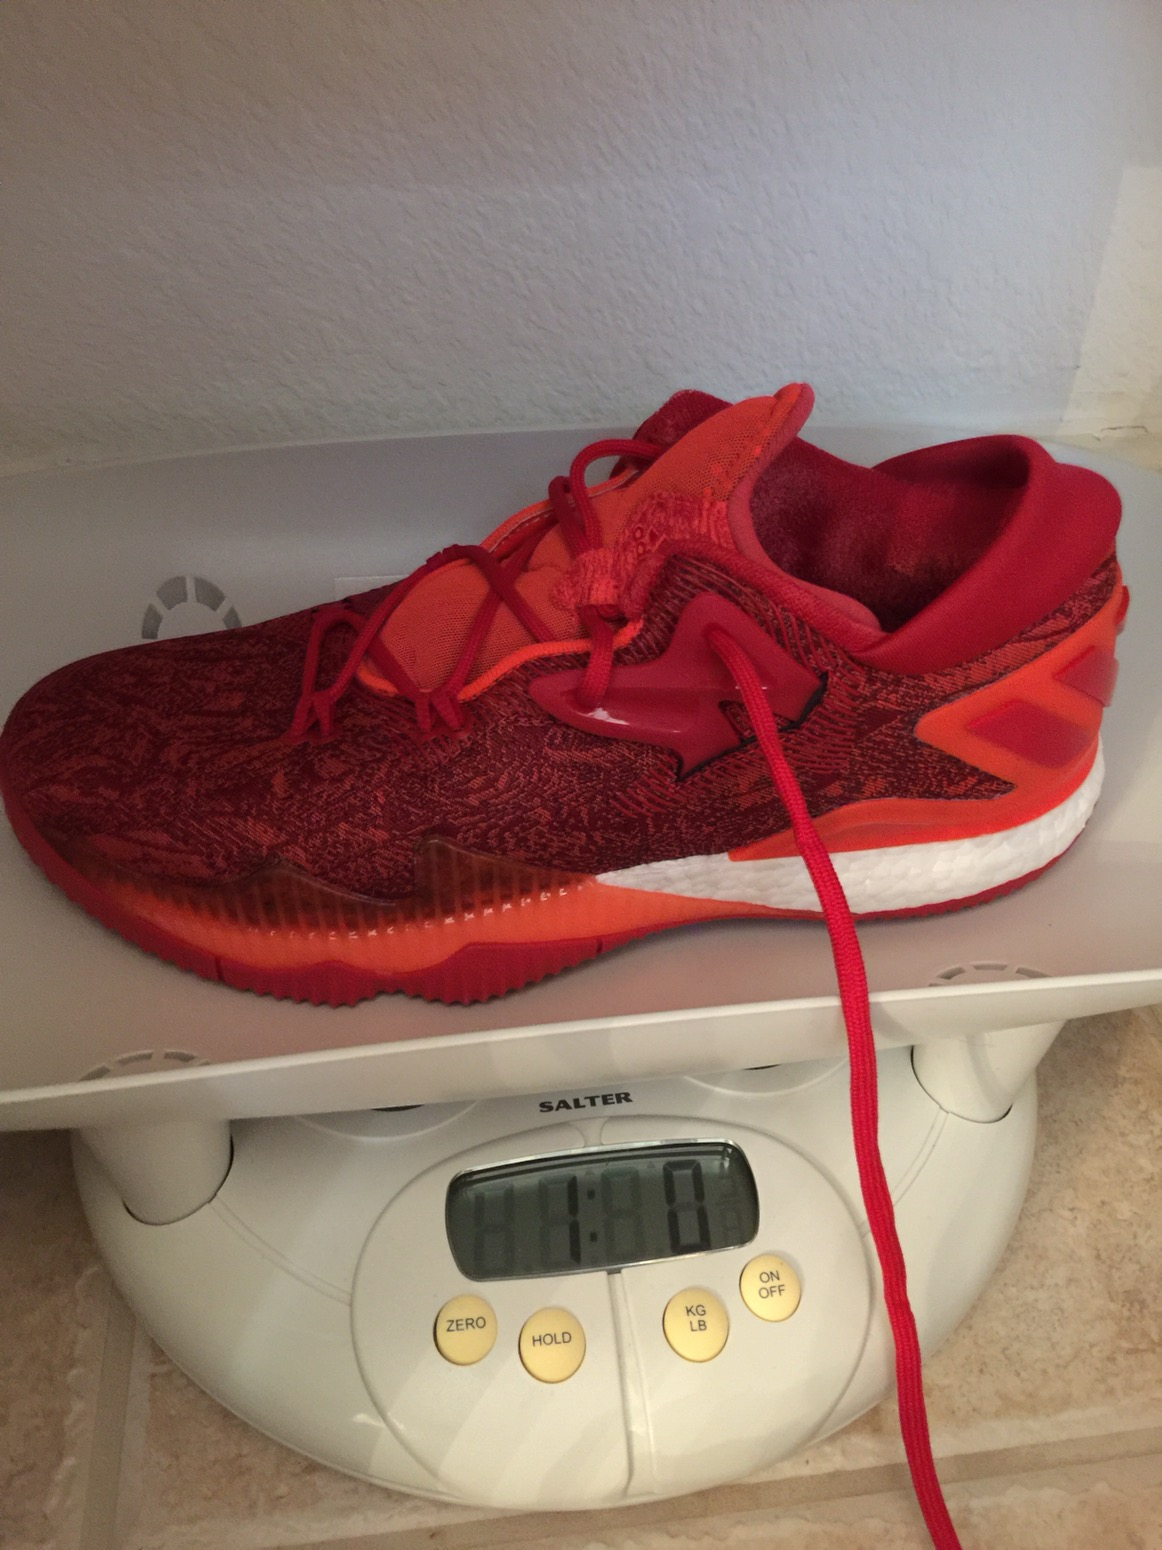 adidas Crazylight Boost 2016 REVIEW: 2016's Leading Shoe